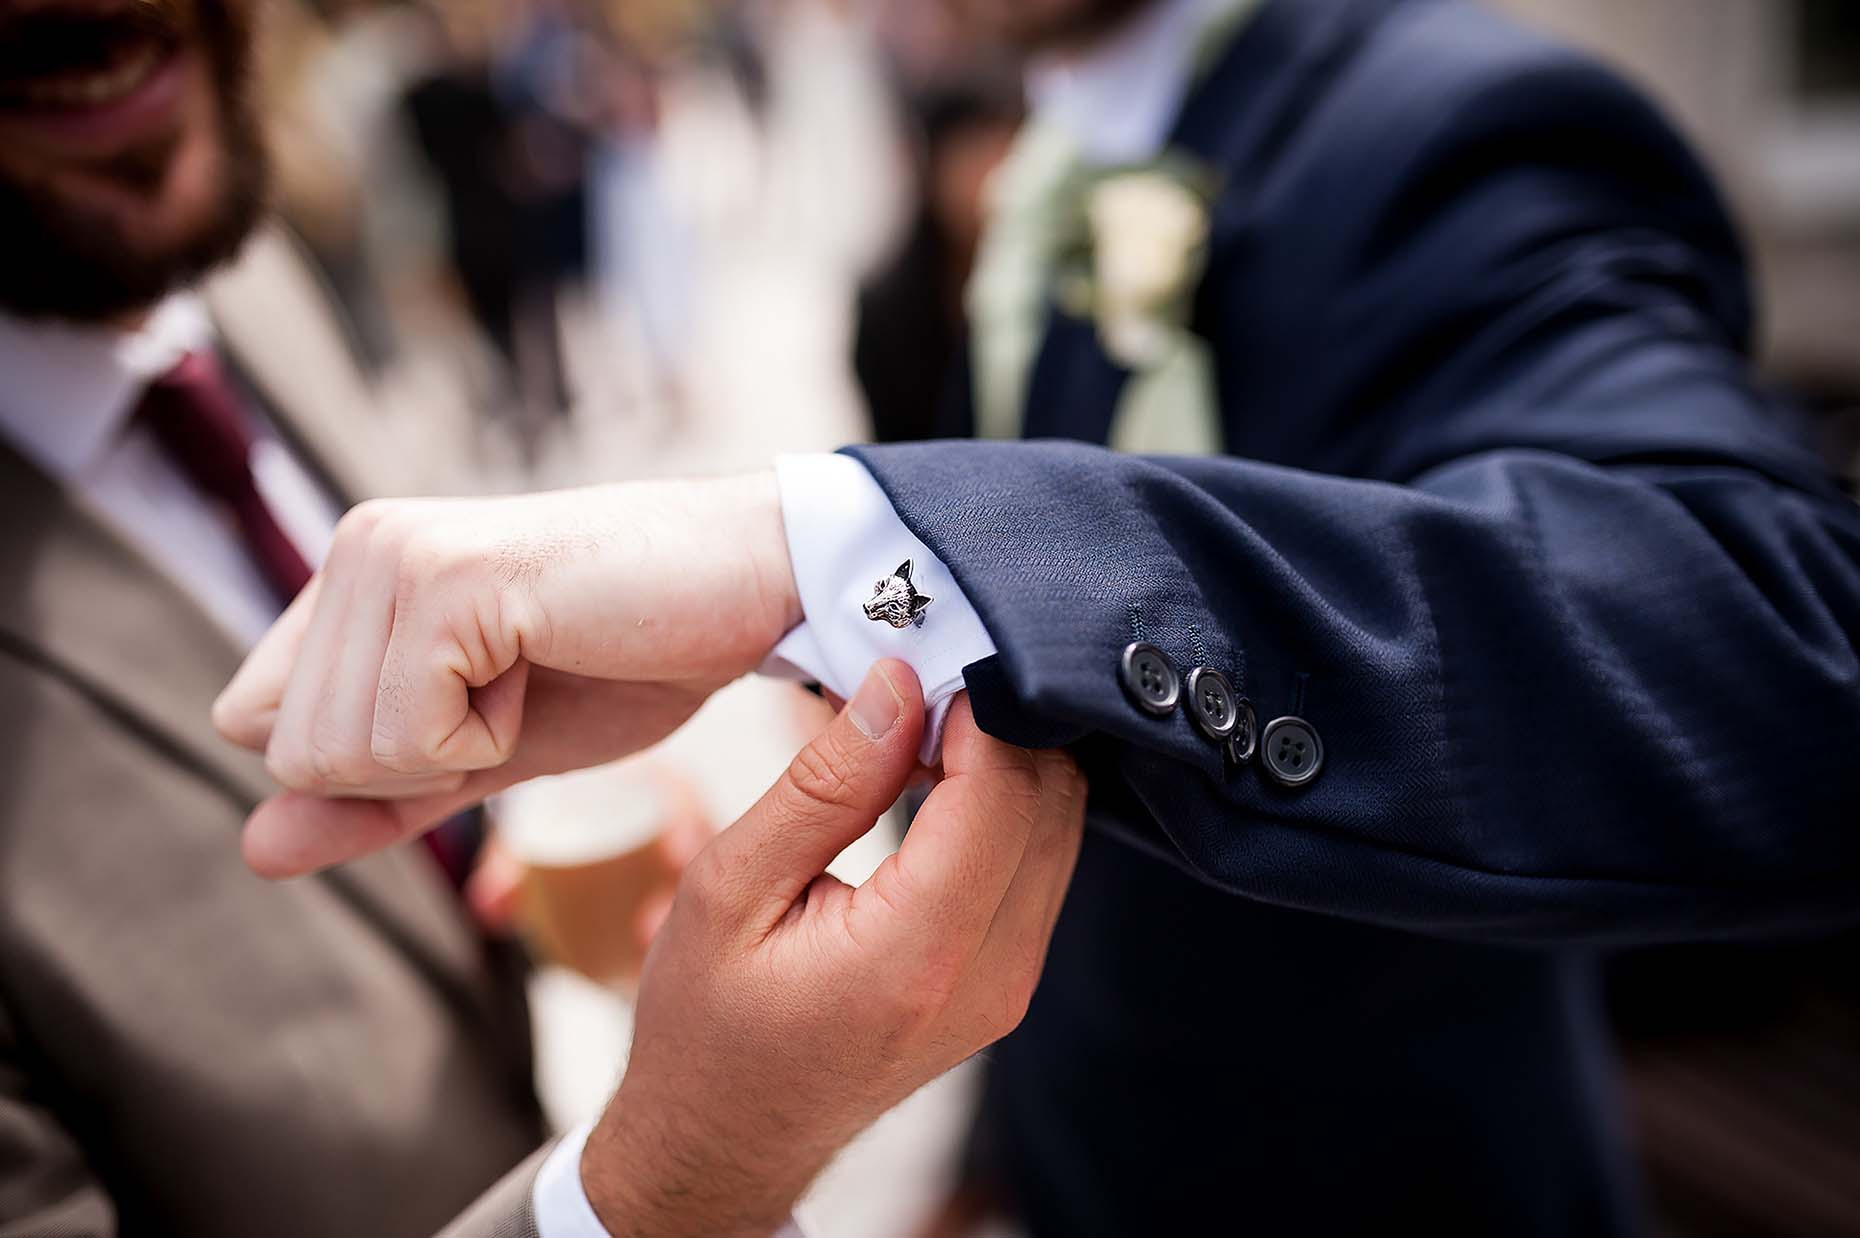 groom-cufflinks-wedding-details-documentary-photographer-london-07